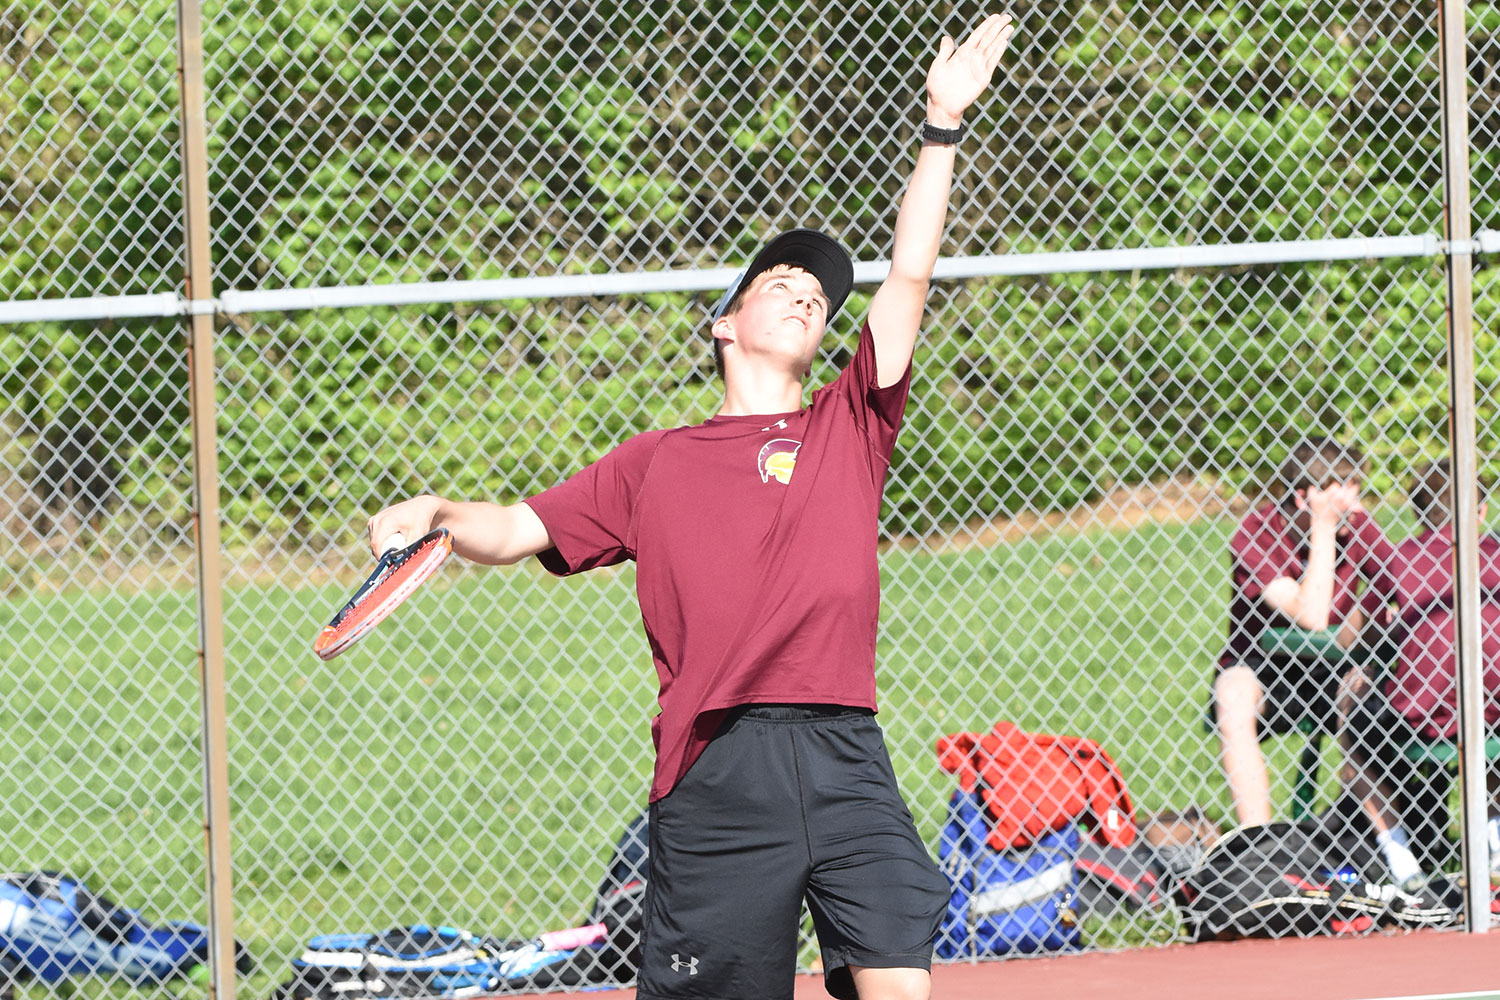 Senior tennis star Matthew Dubuque throws up the ball and winds up his racket to serve the ball.